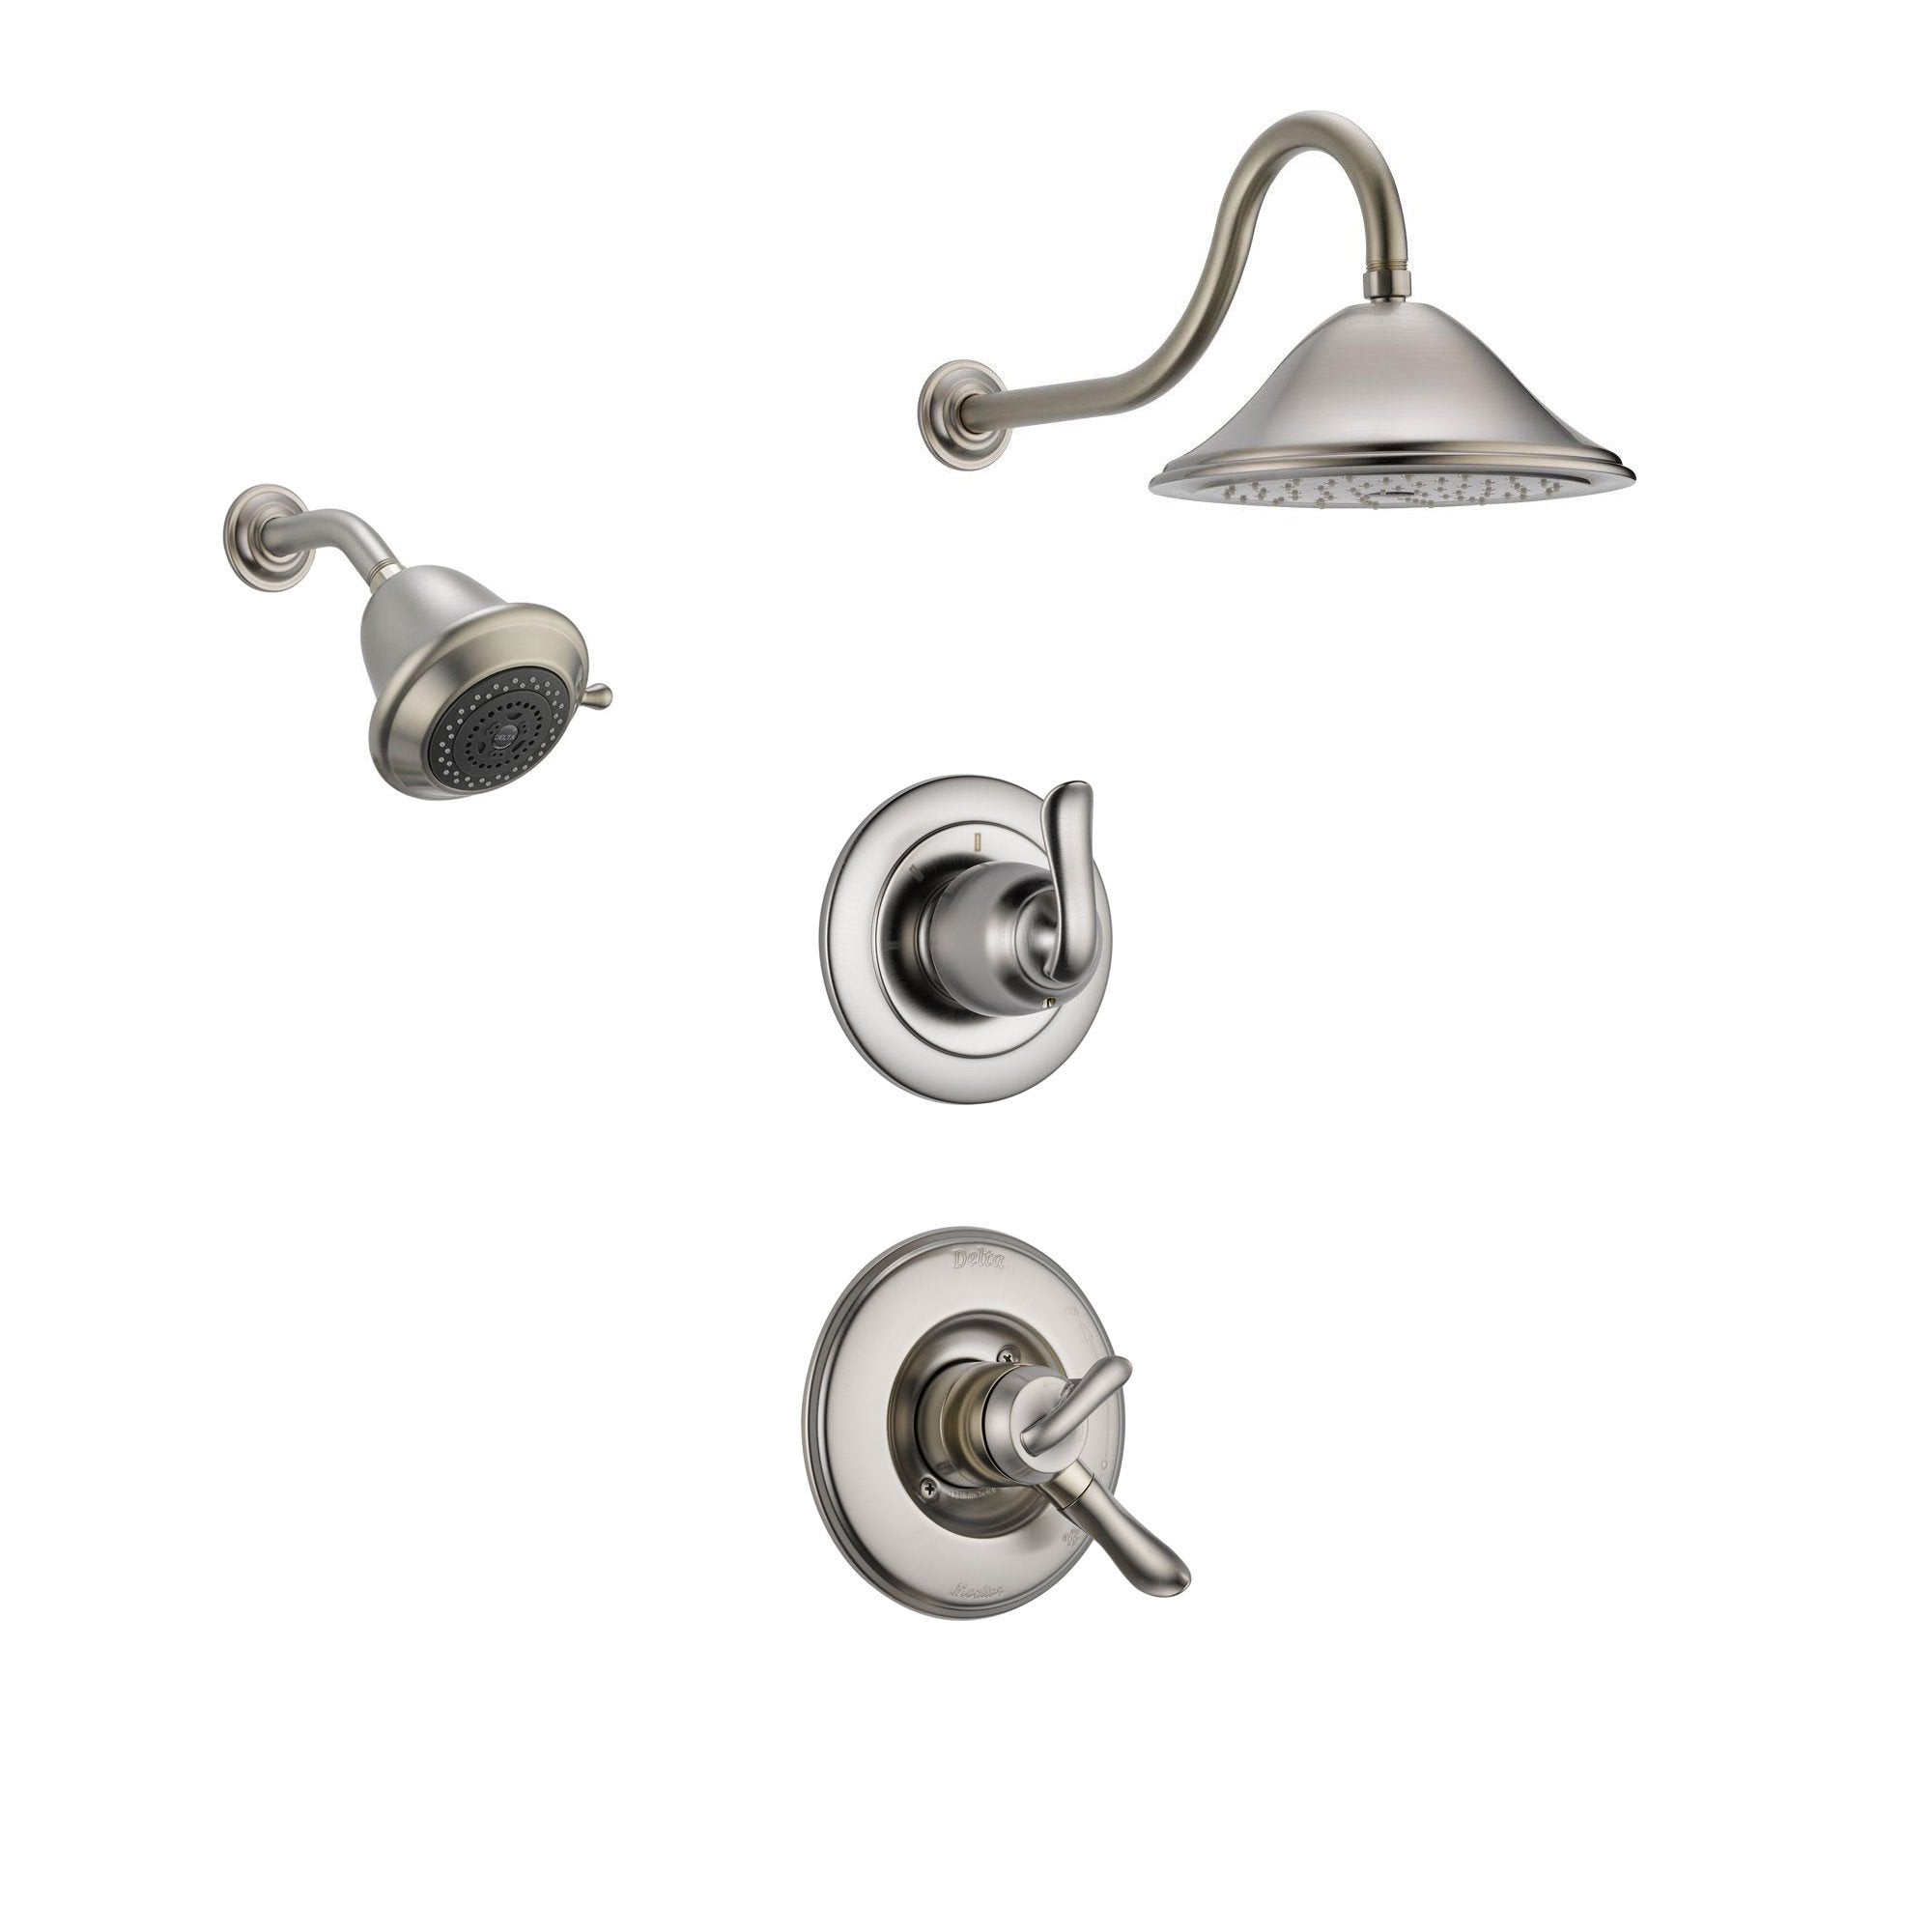 Delta Linden Stainless Steel Shower System with Dual Control Shower Handle, 3-setting Diverter, Large Rain Showerhead, and Smaller Wall Mount Showerhead SS179485SS